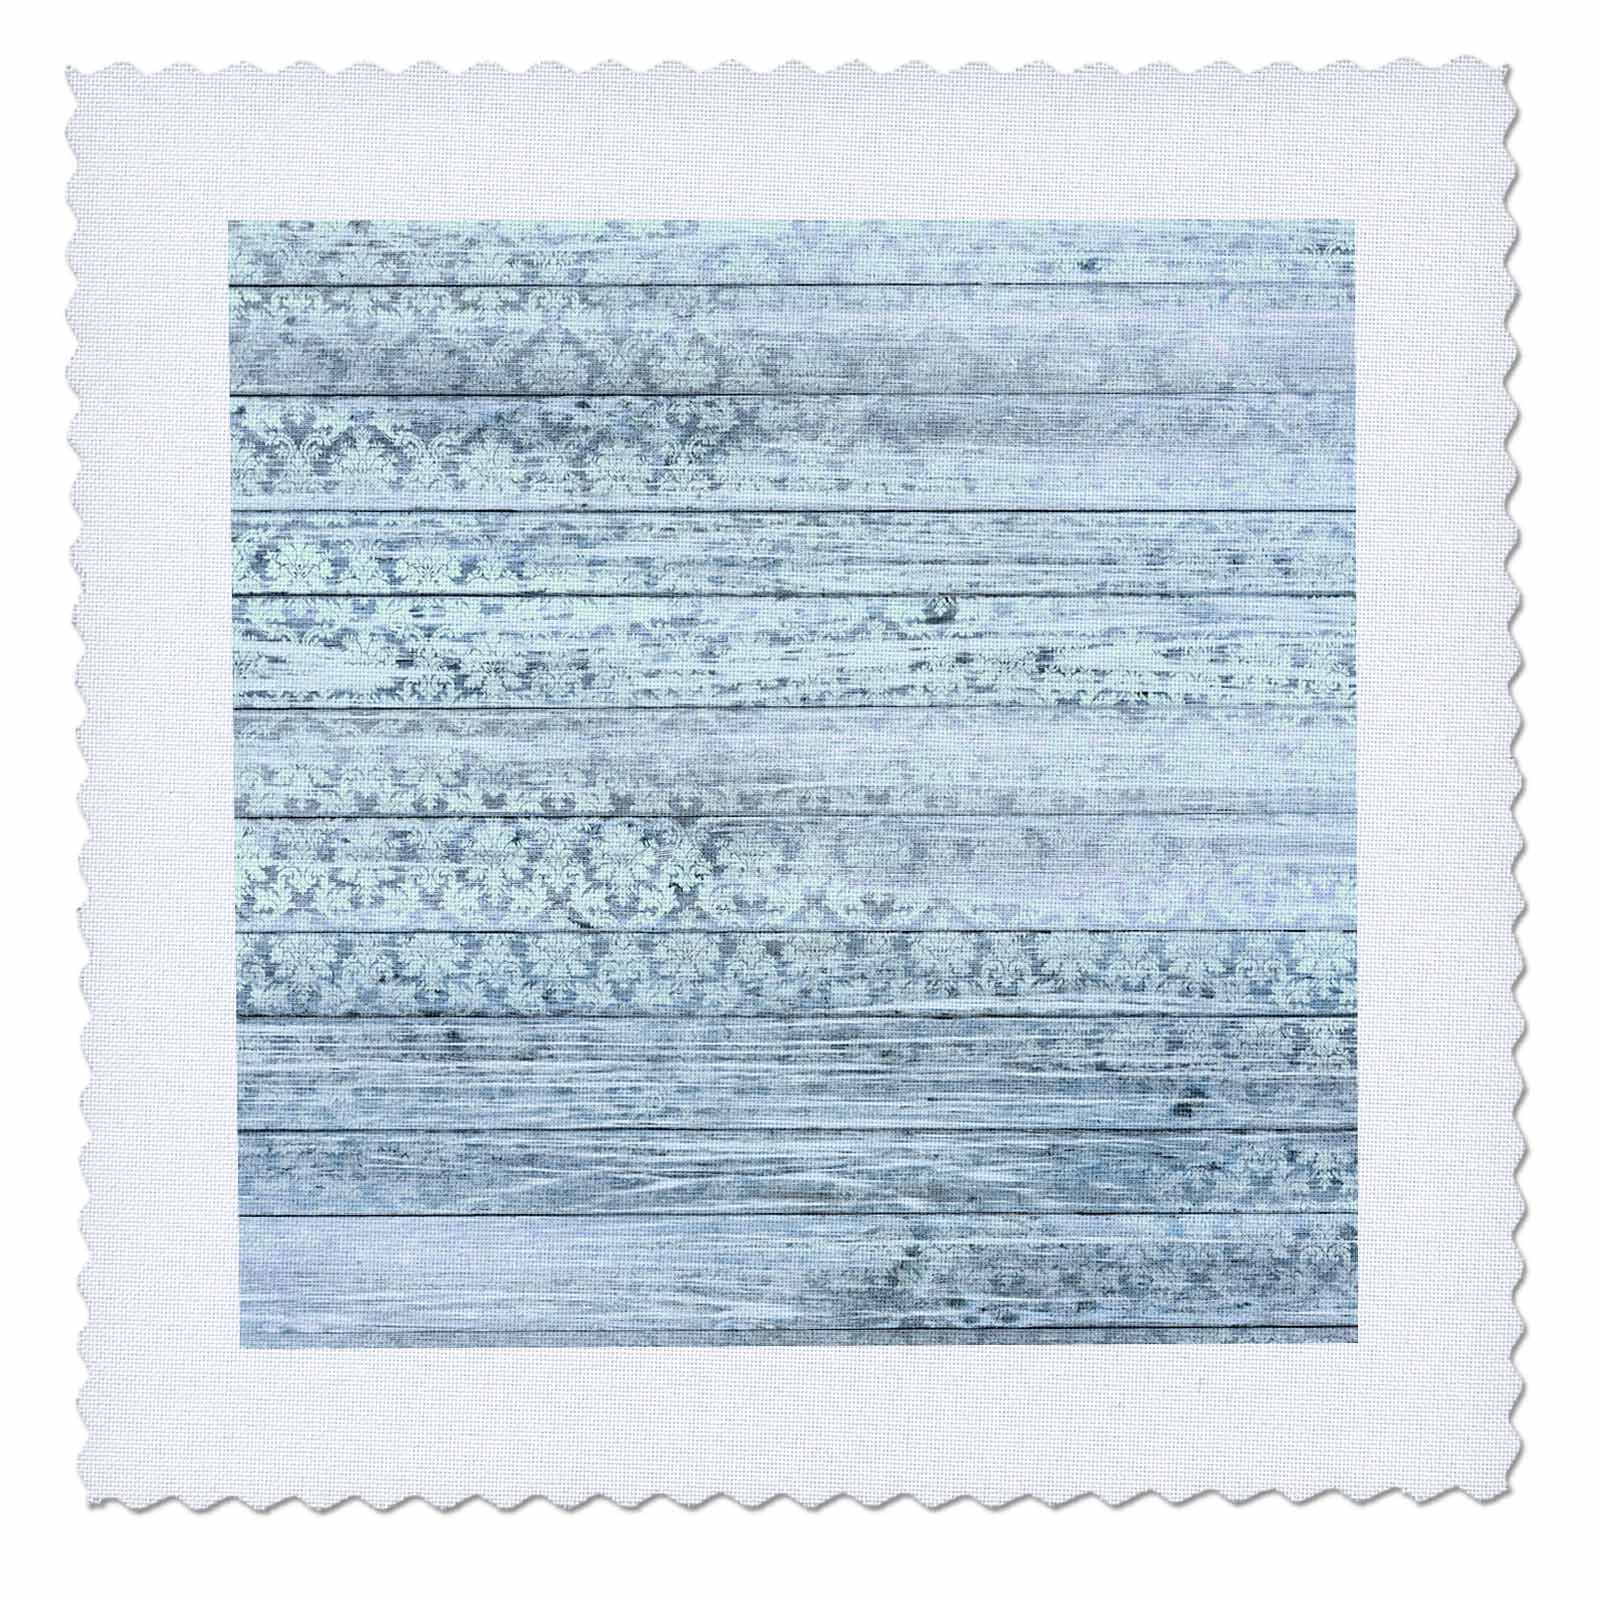 3dRose Anne Marie Baugh - Patterns - Chic Faded Damask On Printed Faux Blue Wood Pattern - 18x18 inch Quilt Square (qs_283303_7)